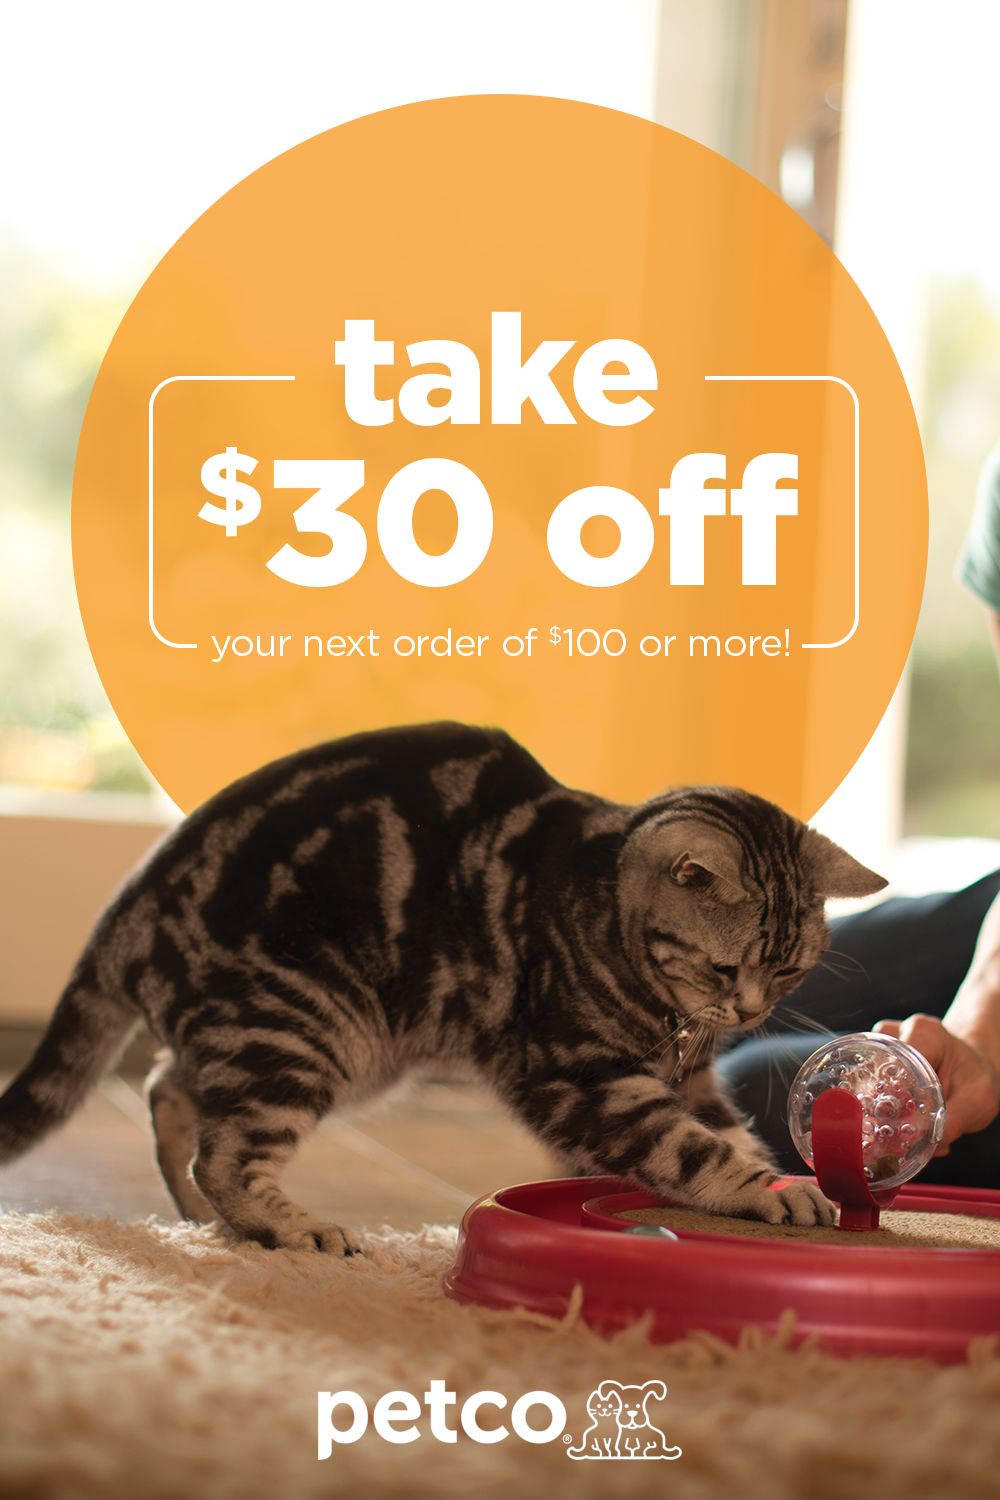 Spark Your Pet S Curiosity With Adorable Toys And Pet Accessories From Petco From Chews And Plush Toys To T Petco Discount Pet Supplies Pets